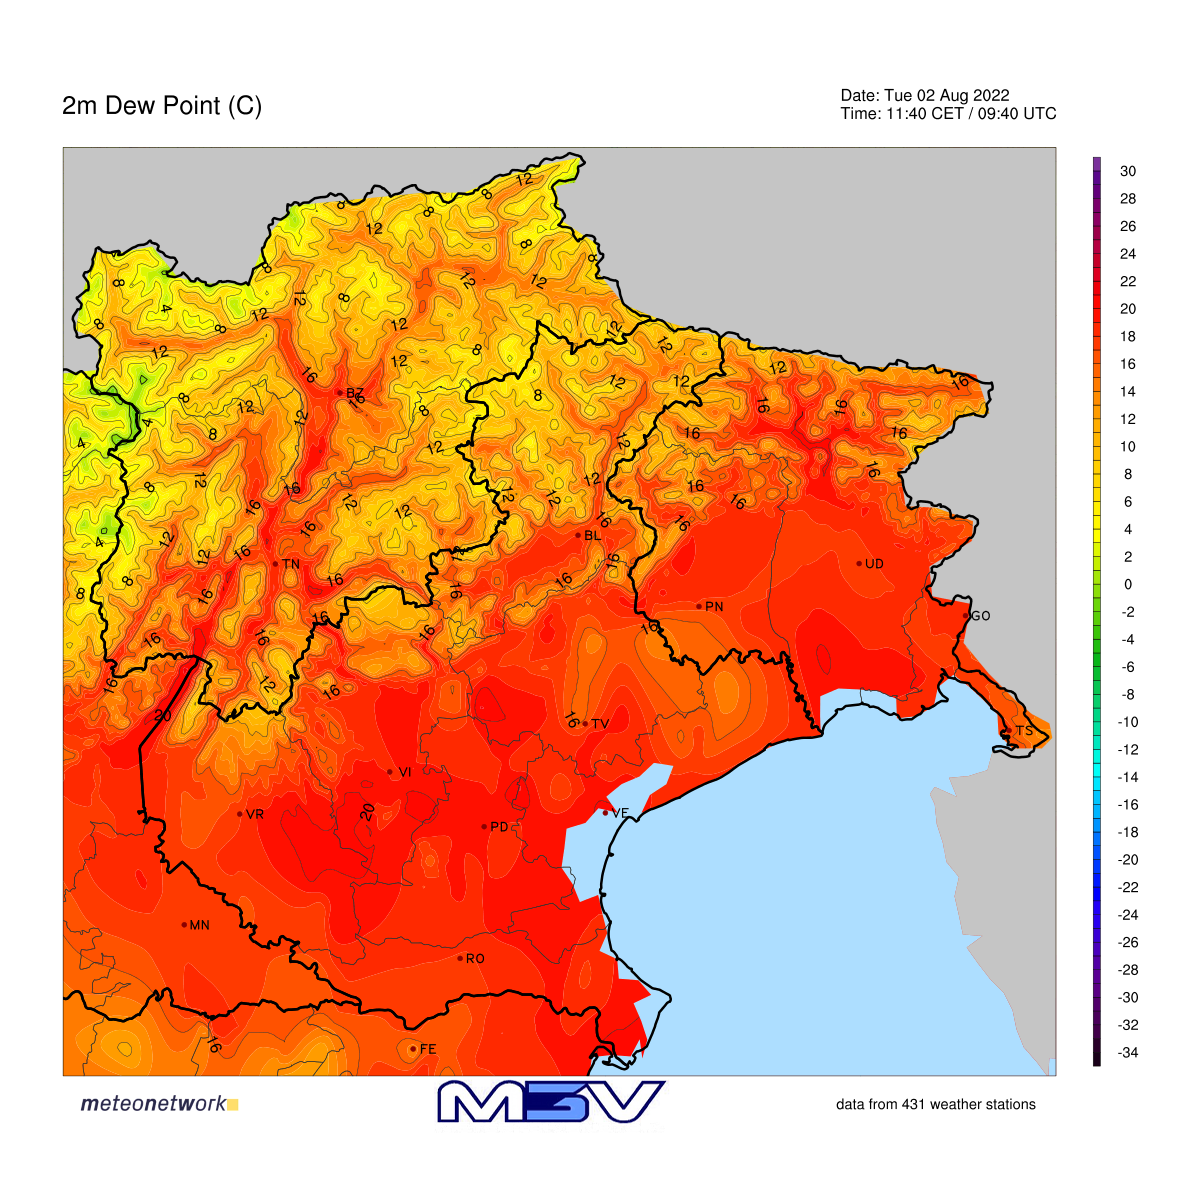 Dew Point Veneto